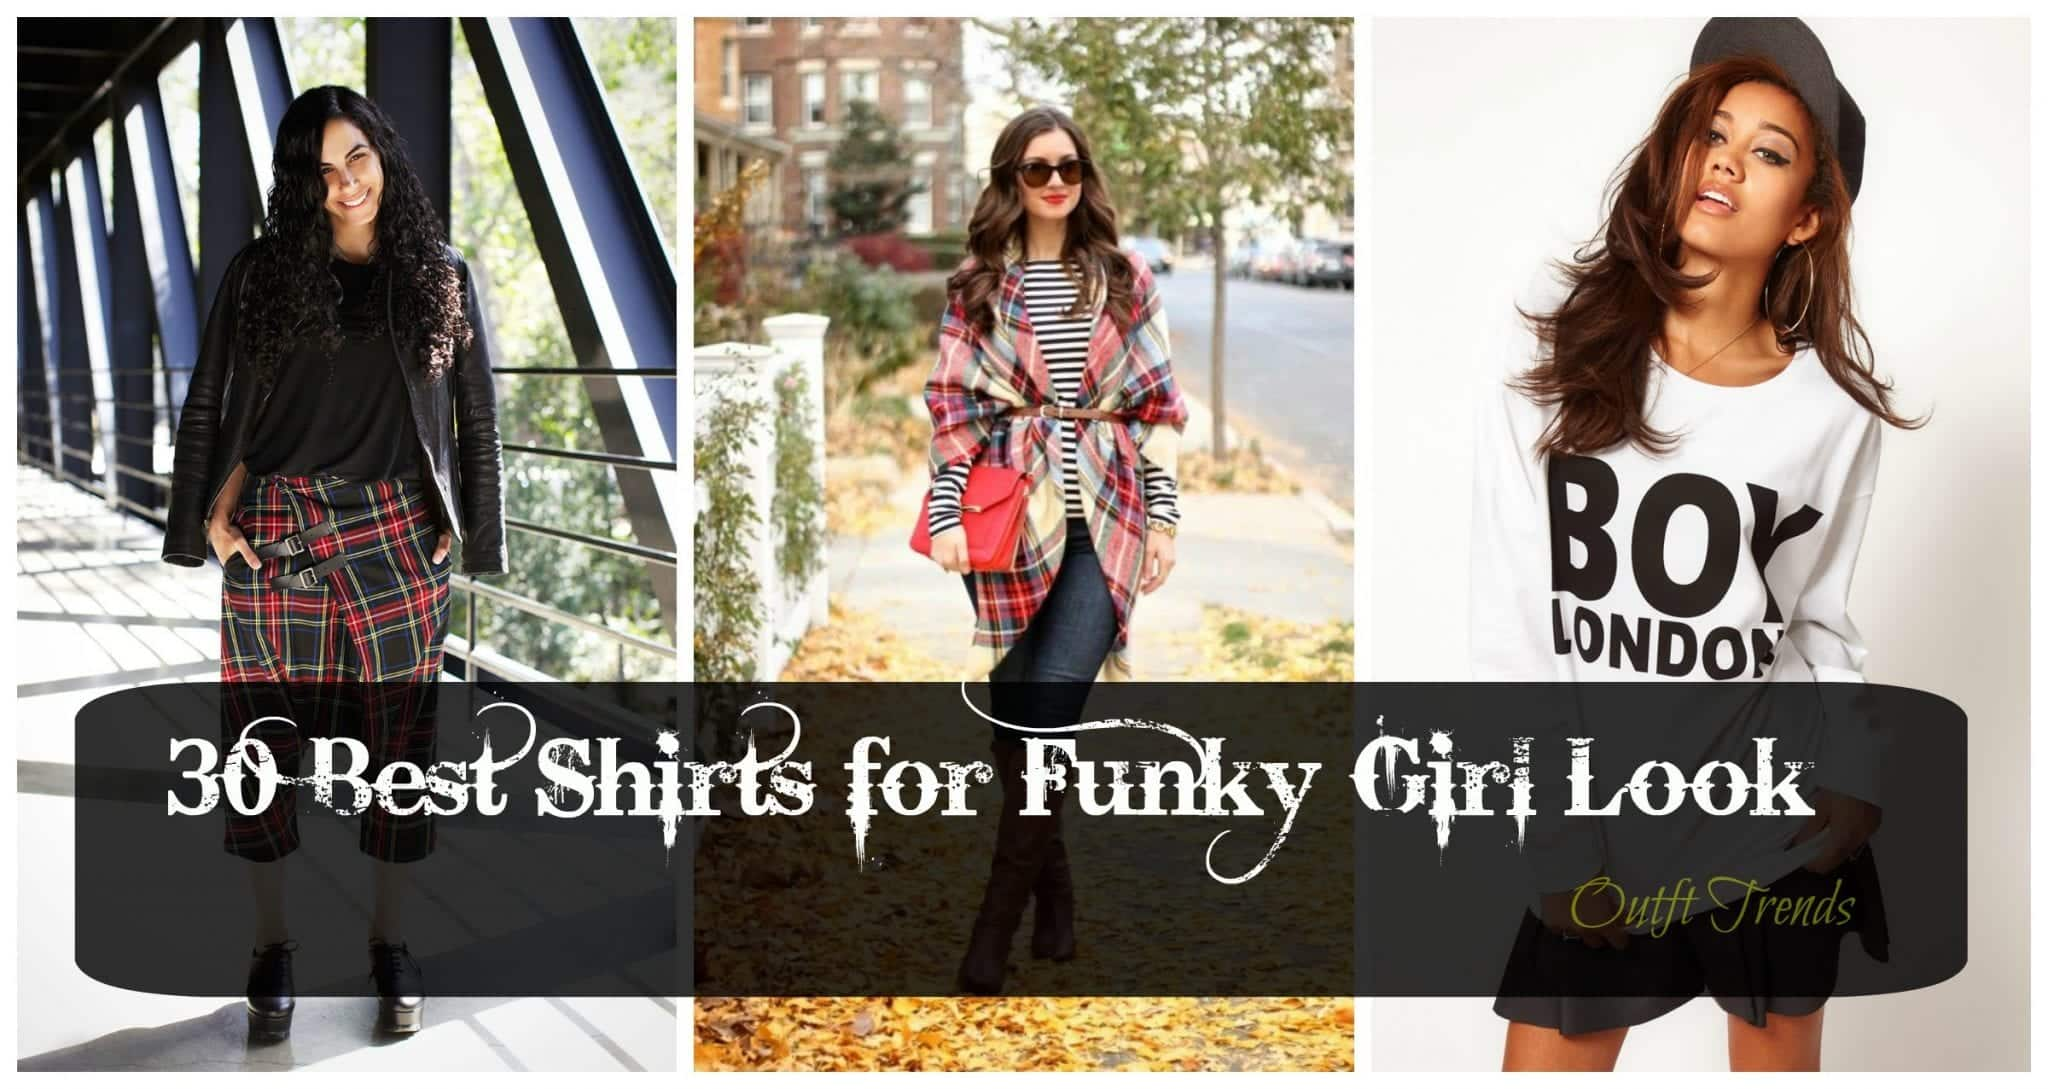 Funky tee shirts for Girls